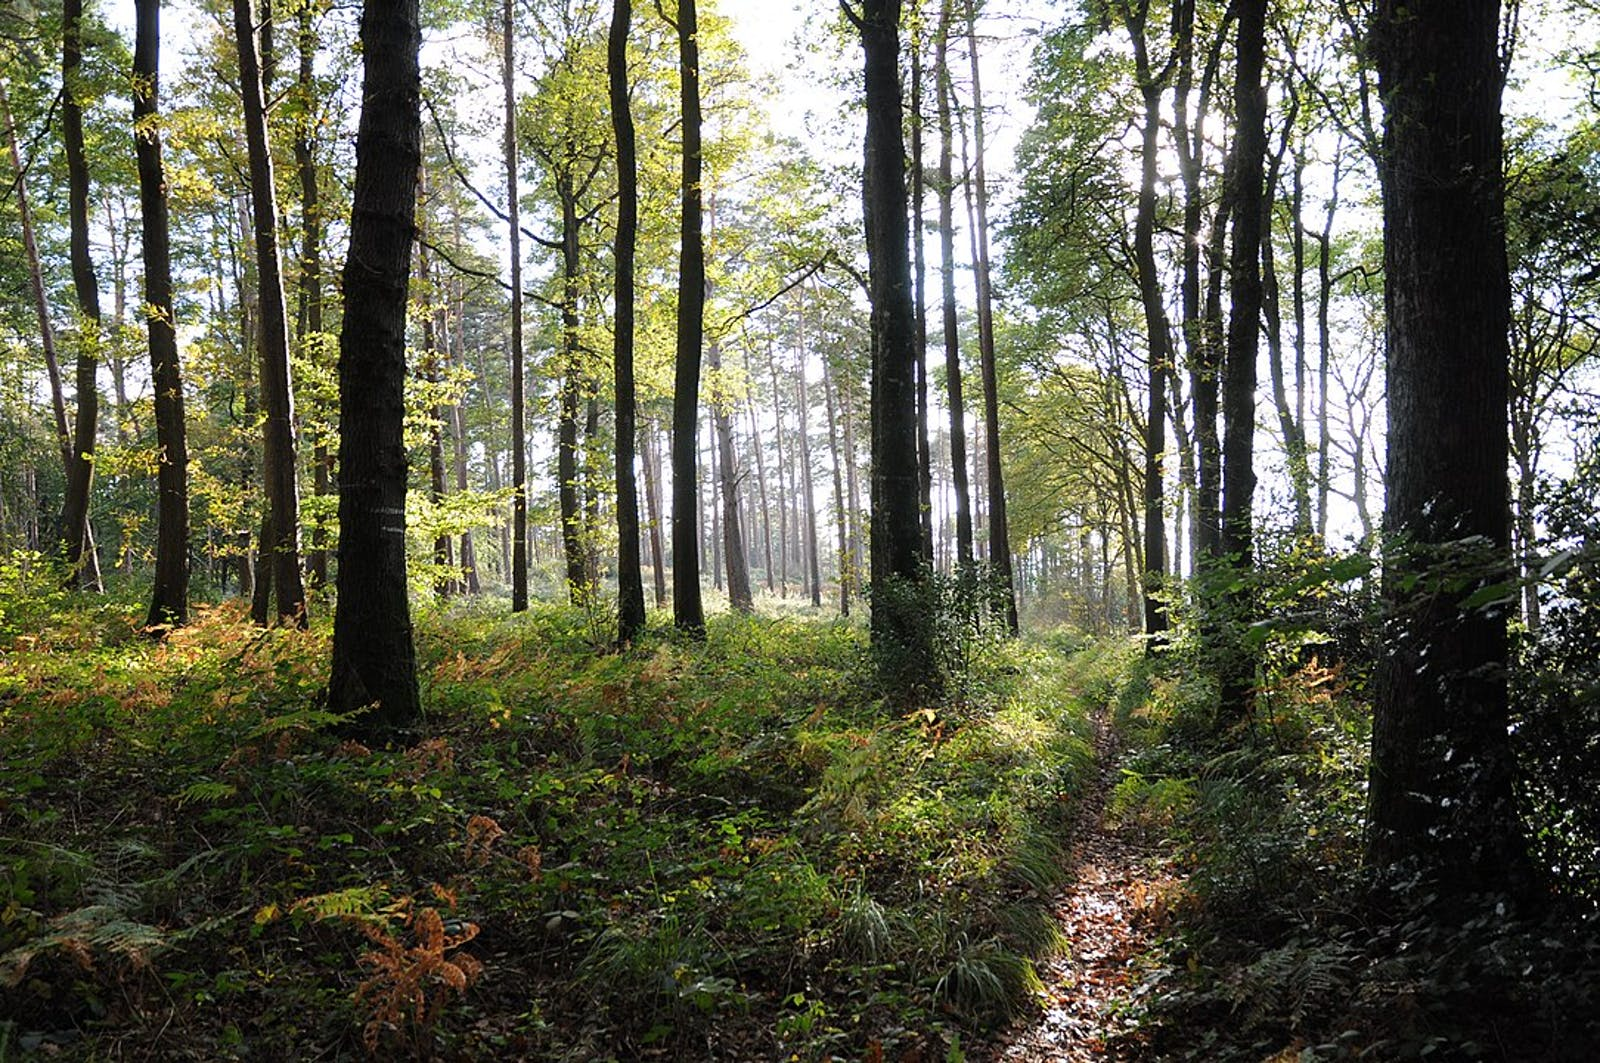 European Atlantic Mixed Forests